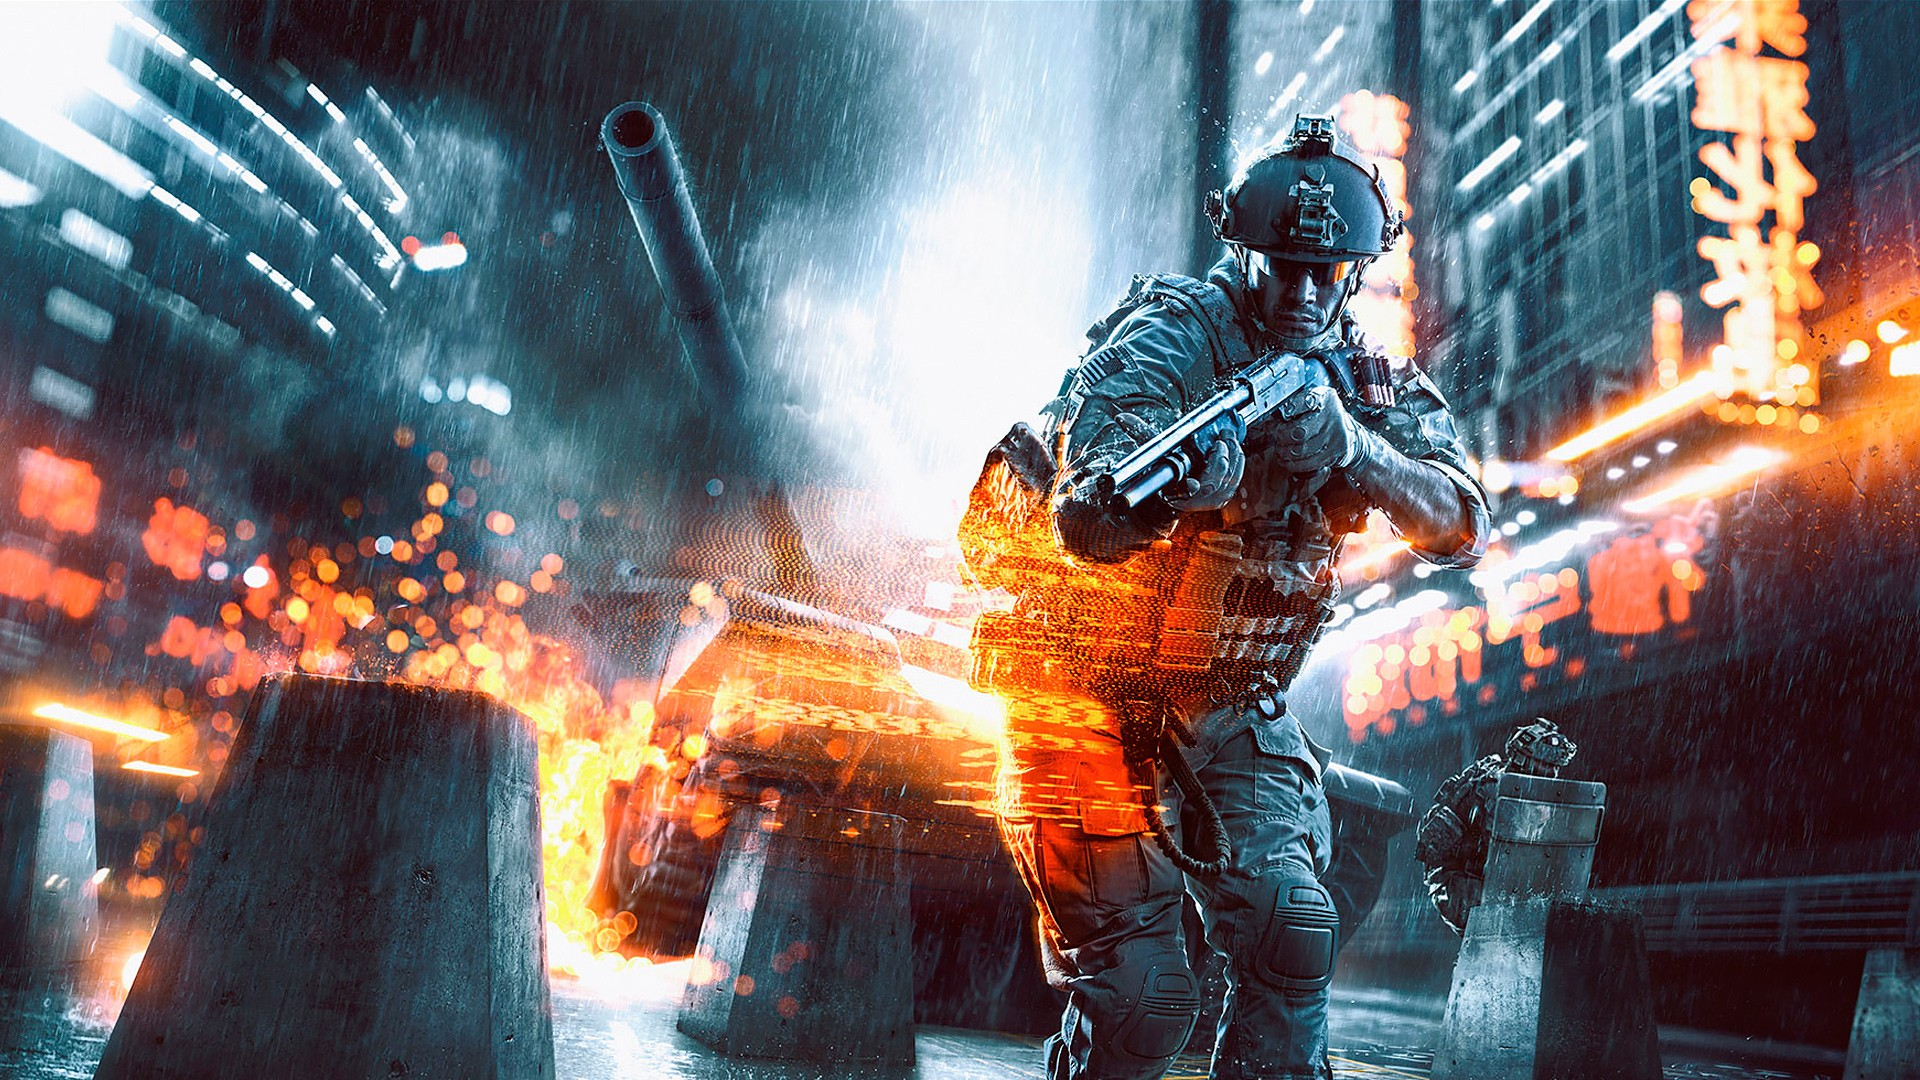 Download Wallpaper 1280x1280 Battlefield 4 Game Ea: Battlefield 4 Game HD, HD Games, 4k Wallpapers, Images